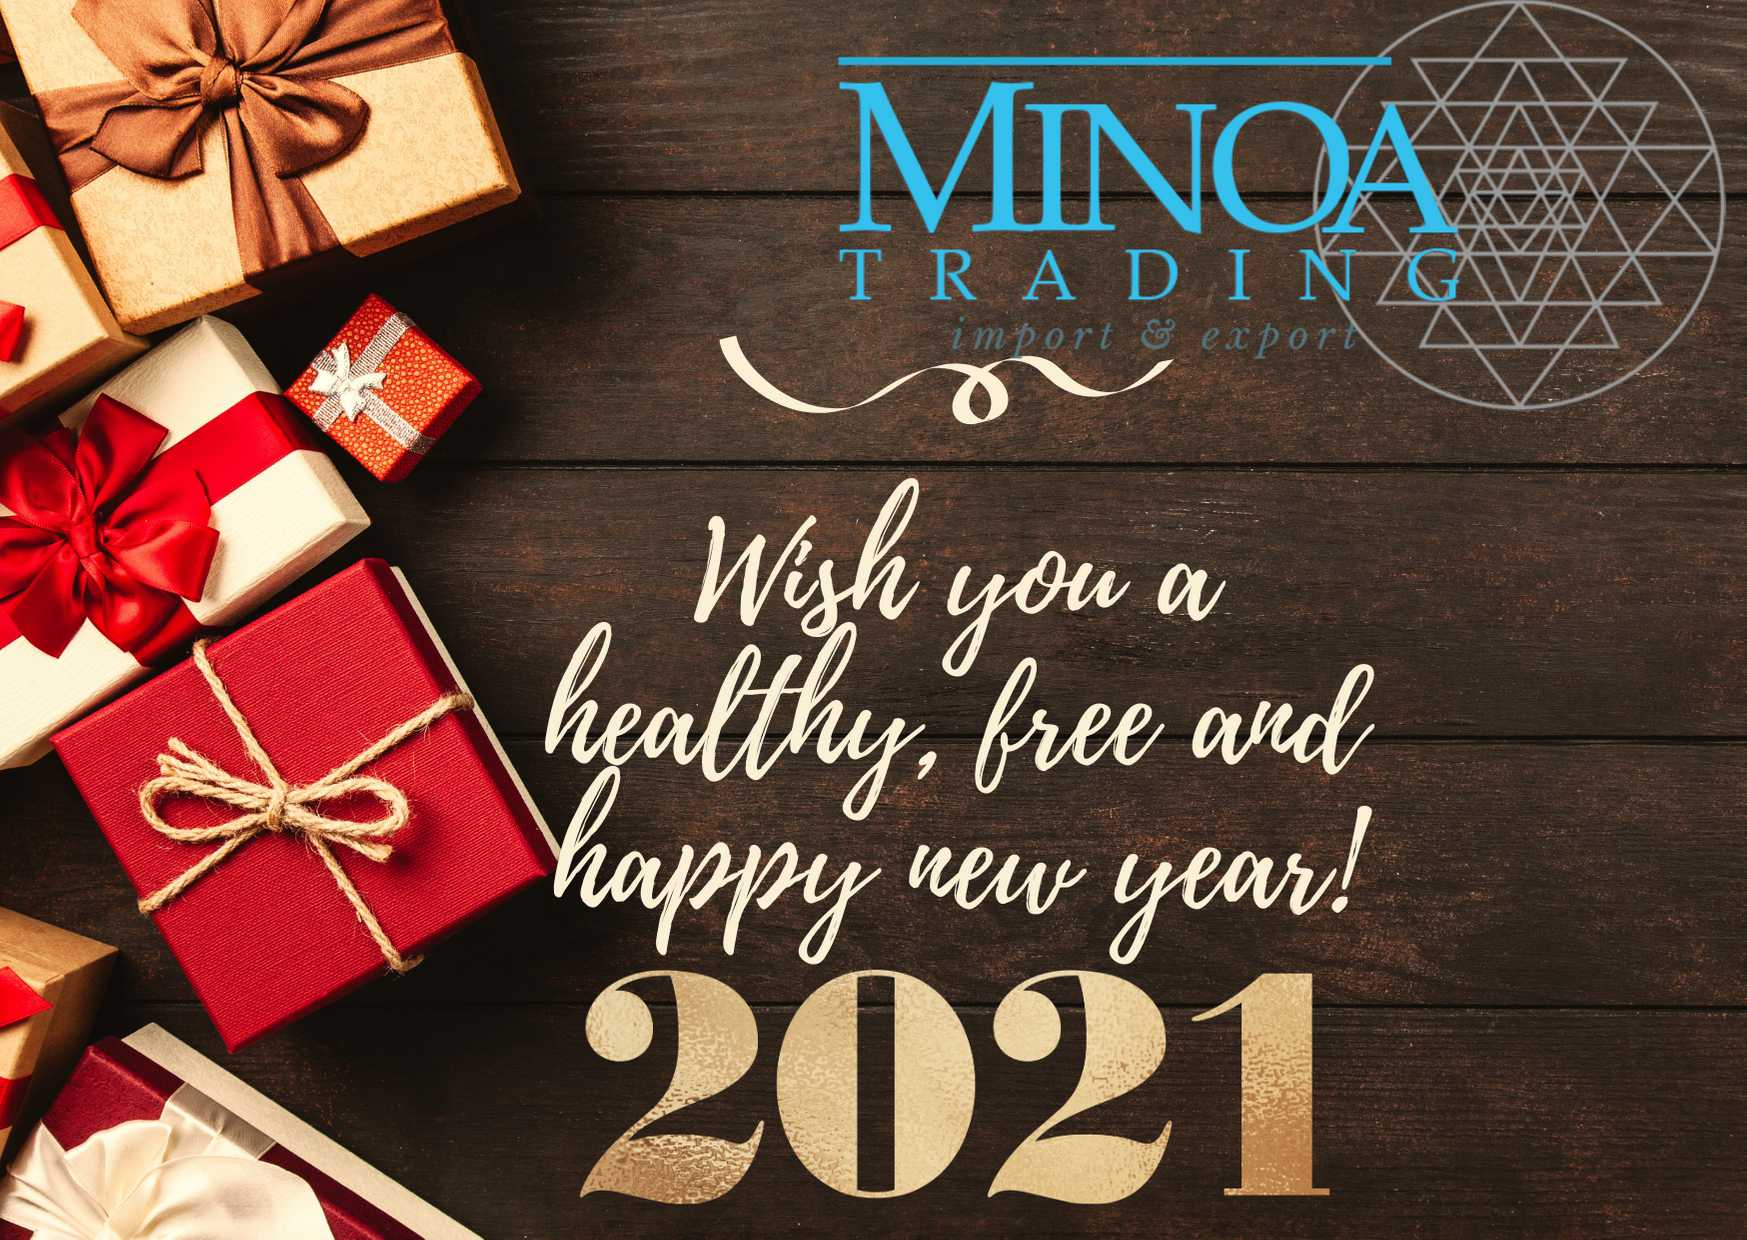 Happy and Healthy New Year! 2021